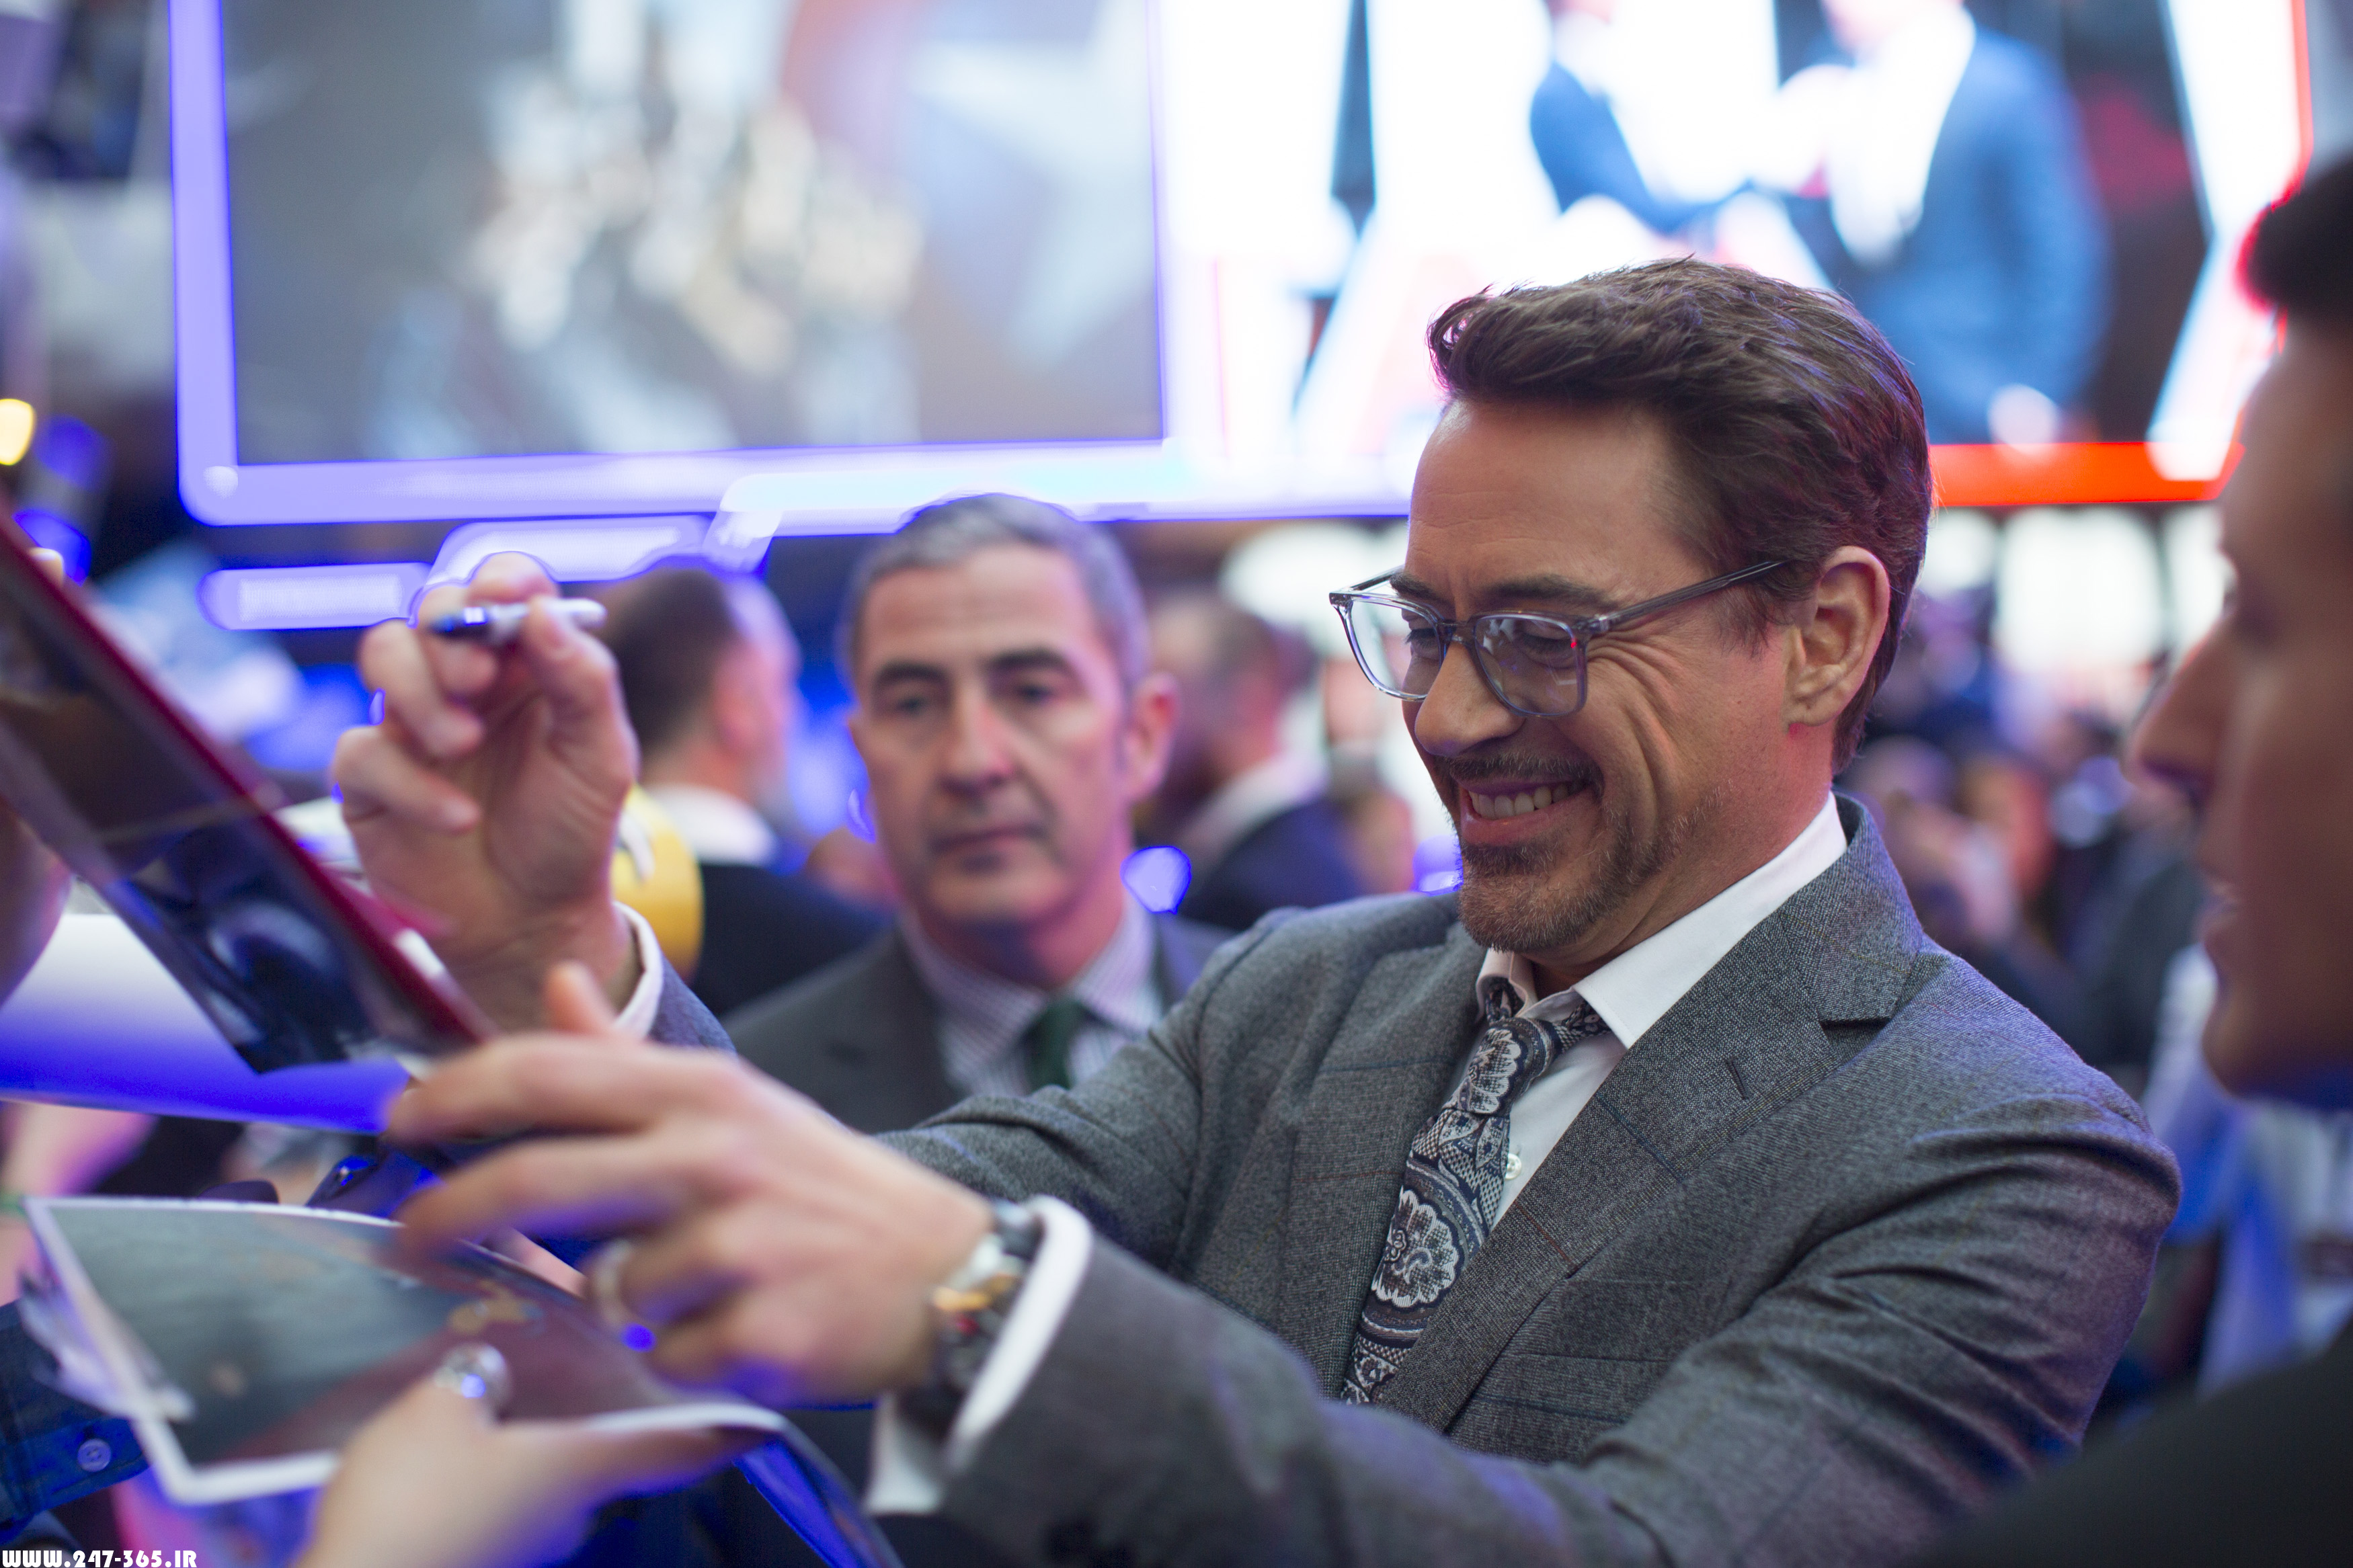 http://dl.247-365.ir/pic/celebrity/robert_downey_jr_3/Robert_Downey_Jr_3_01.jpg